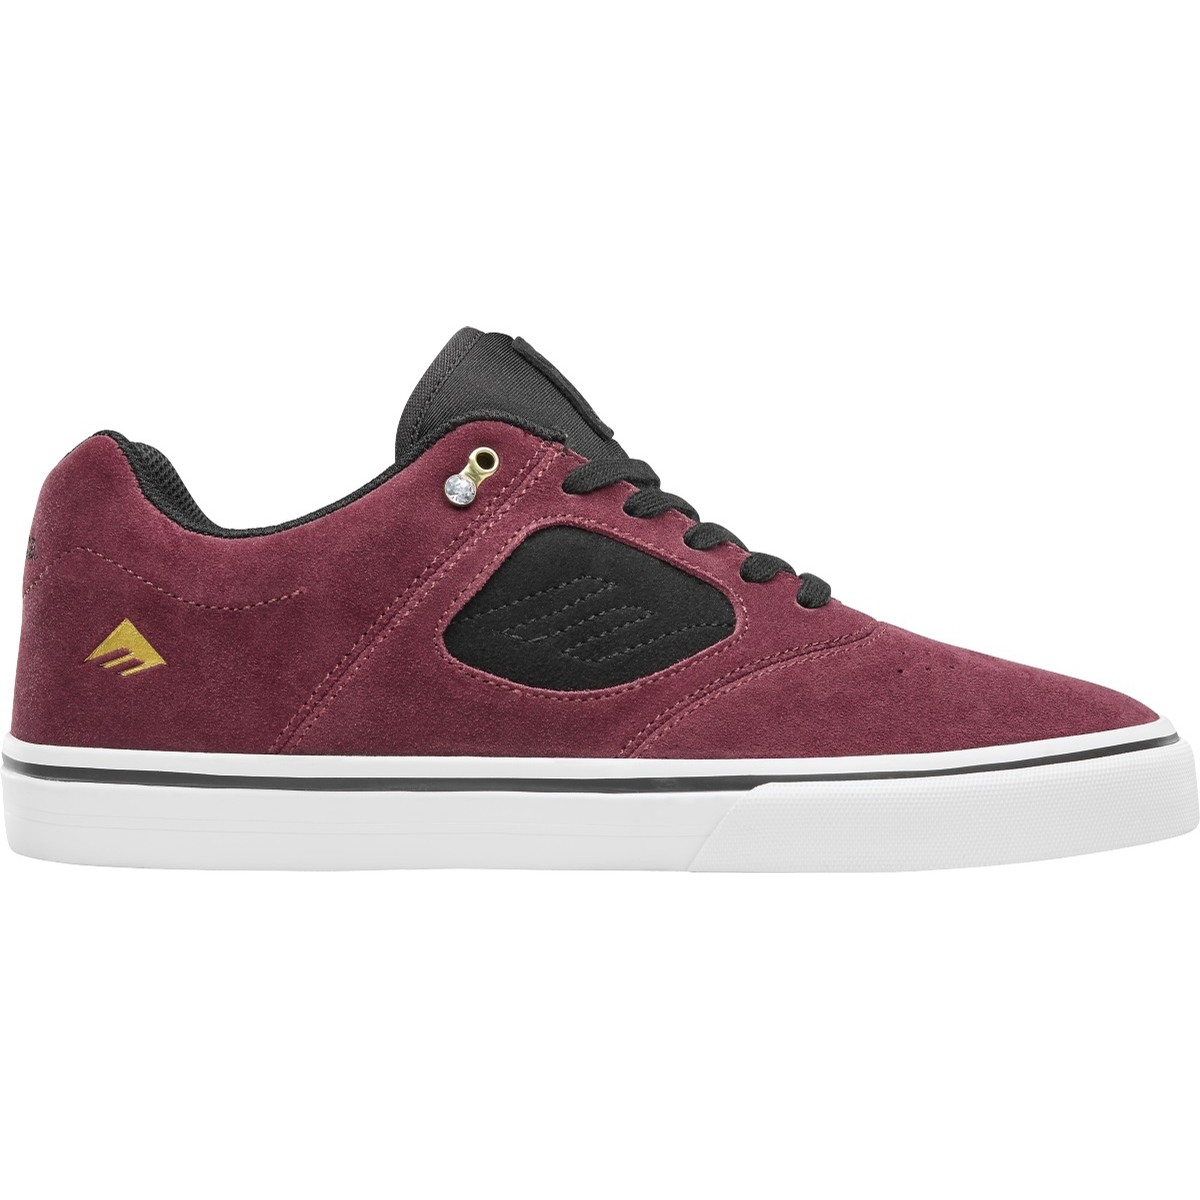 Reynolds 3 G6 Vulc (Maroon/Black/White)